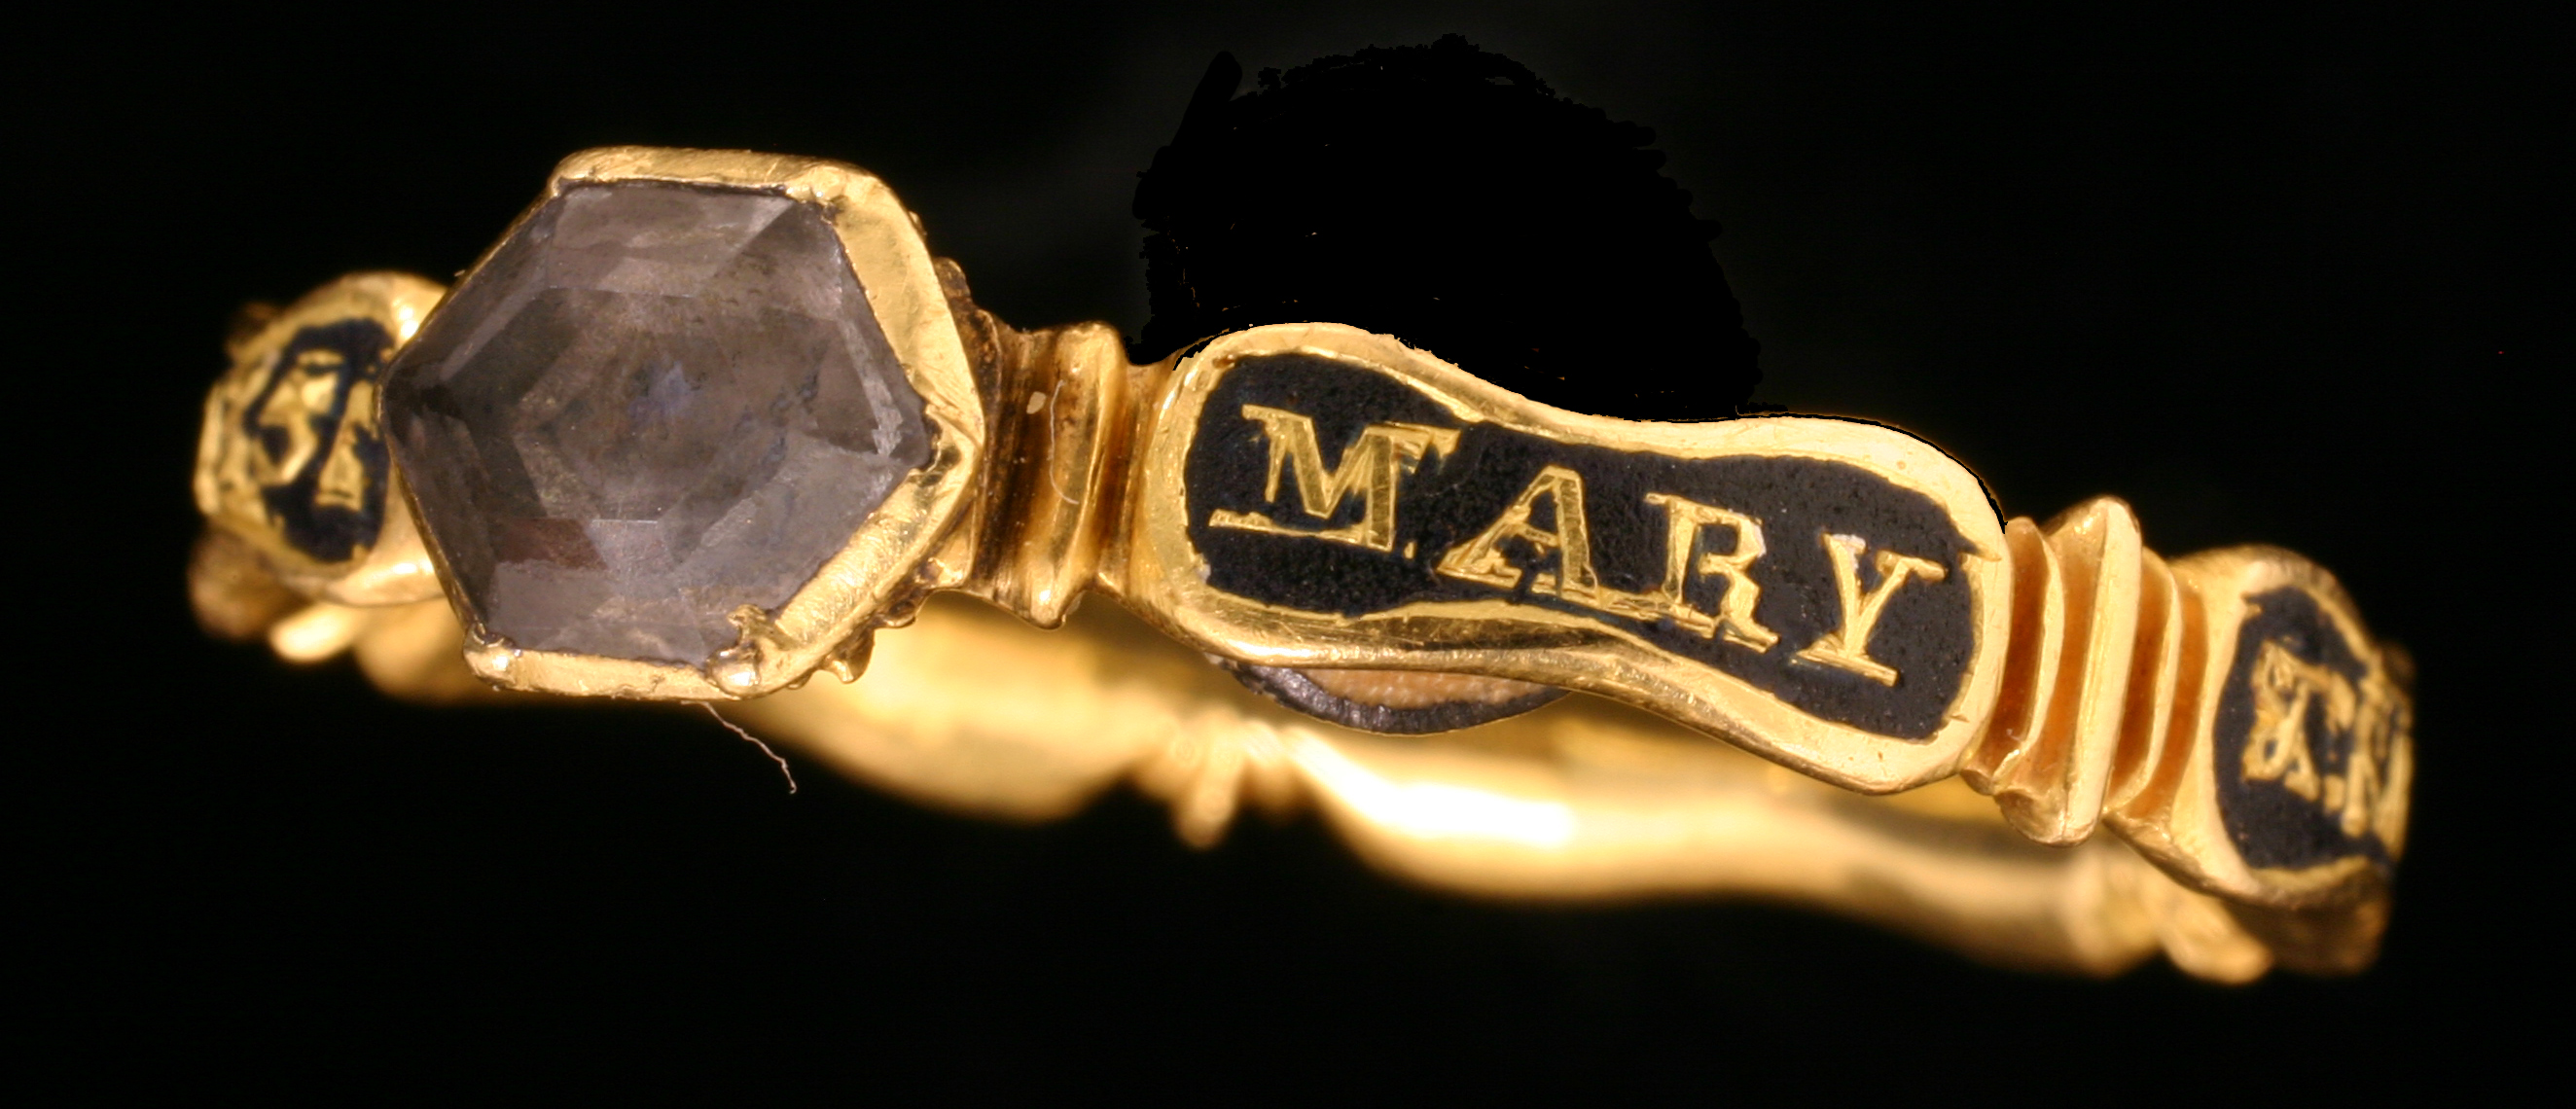 File:Post Medieval Mourning Ring (FindID 119434-89621).jpg